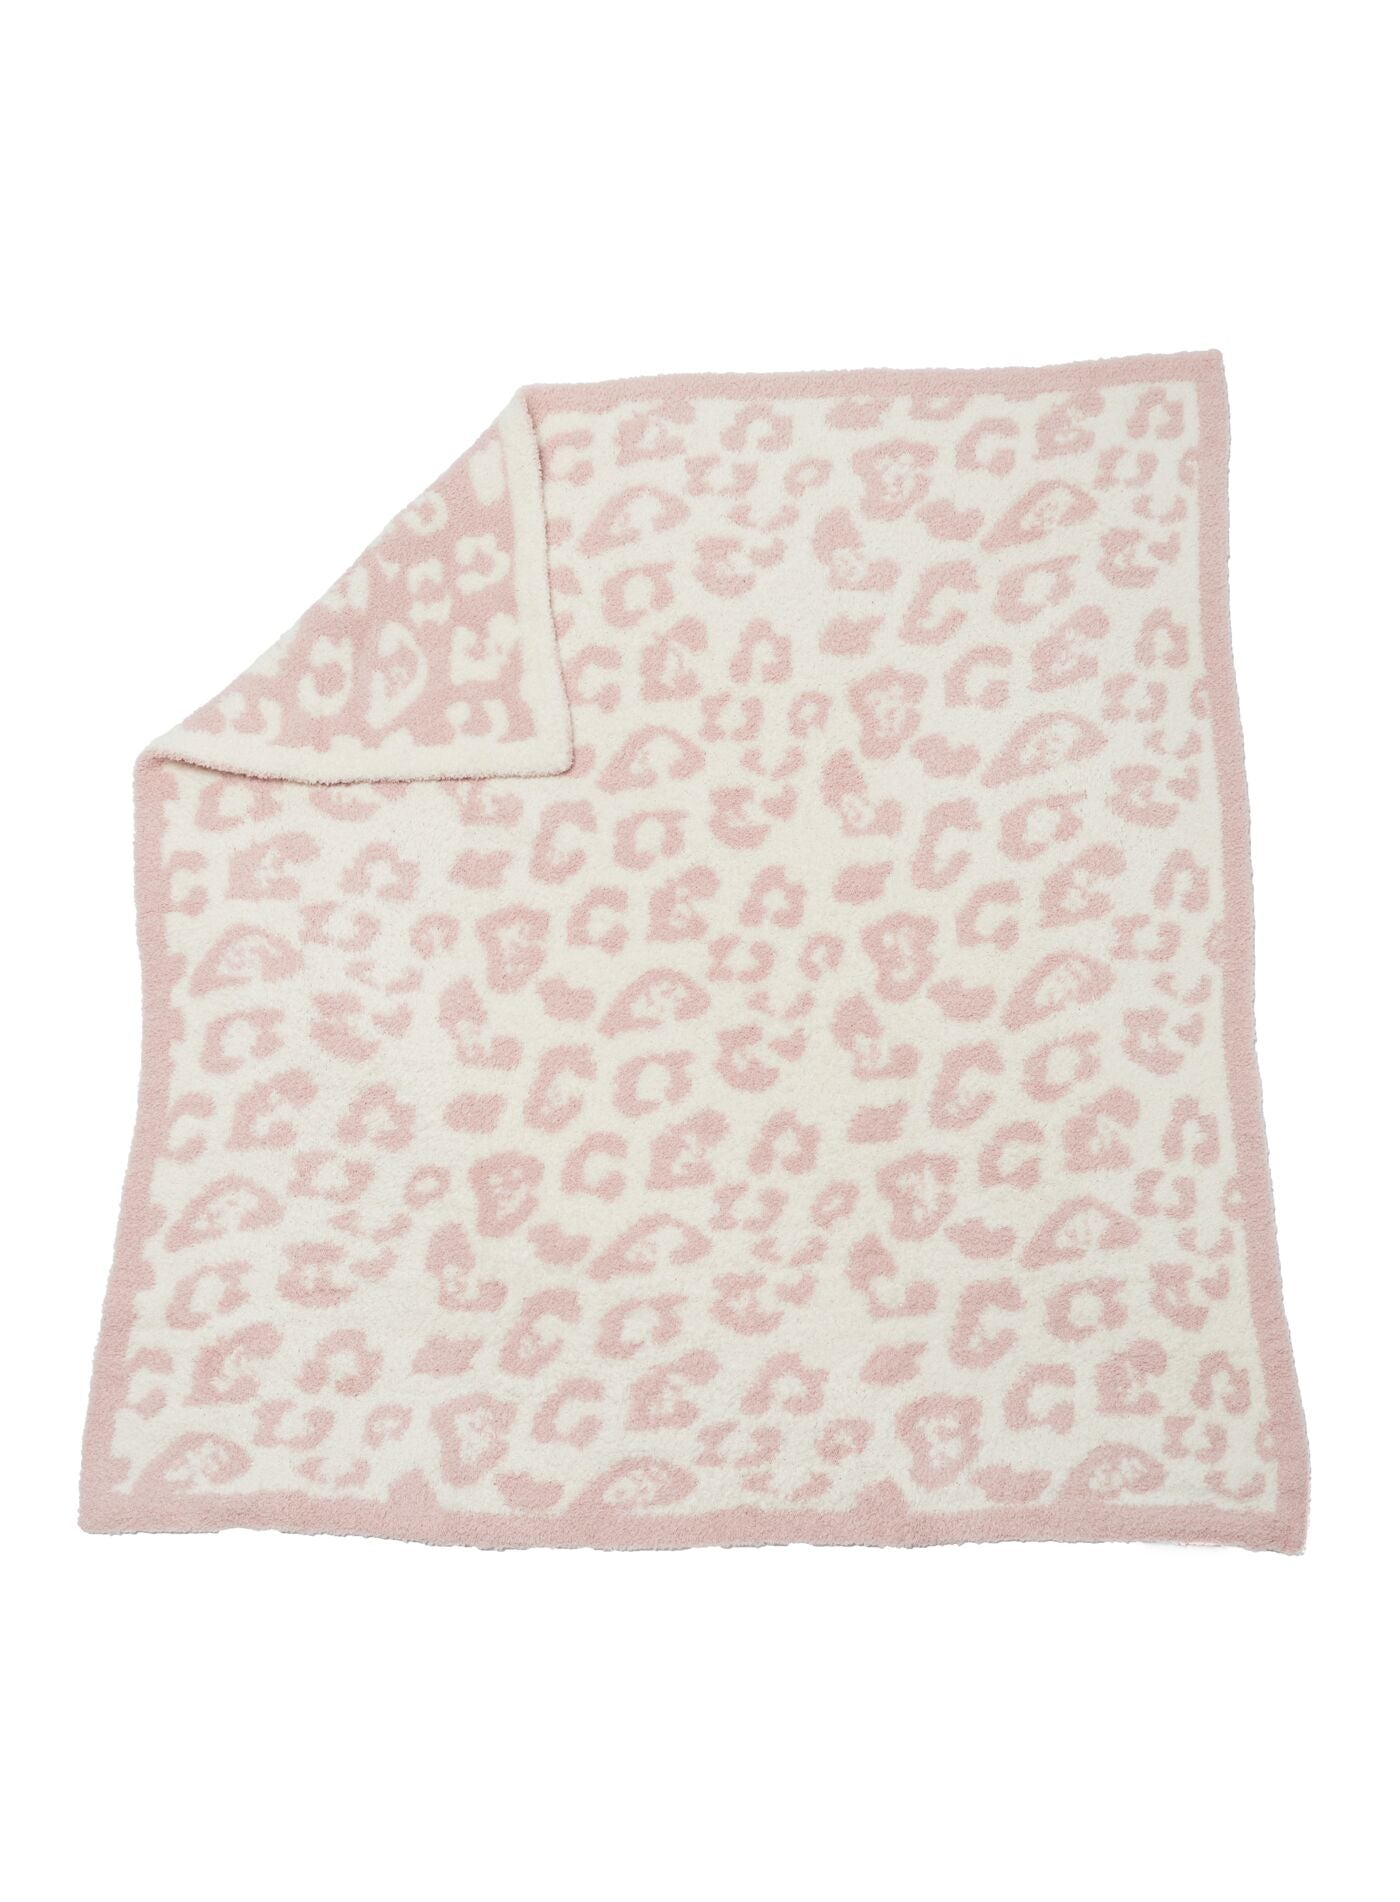 BAREFOOT DREAMS - the COZYCHIC® BAREFOOT IN THE WILD BABY BLANKET